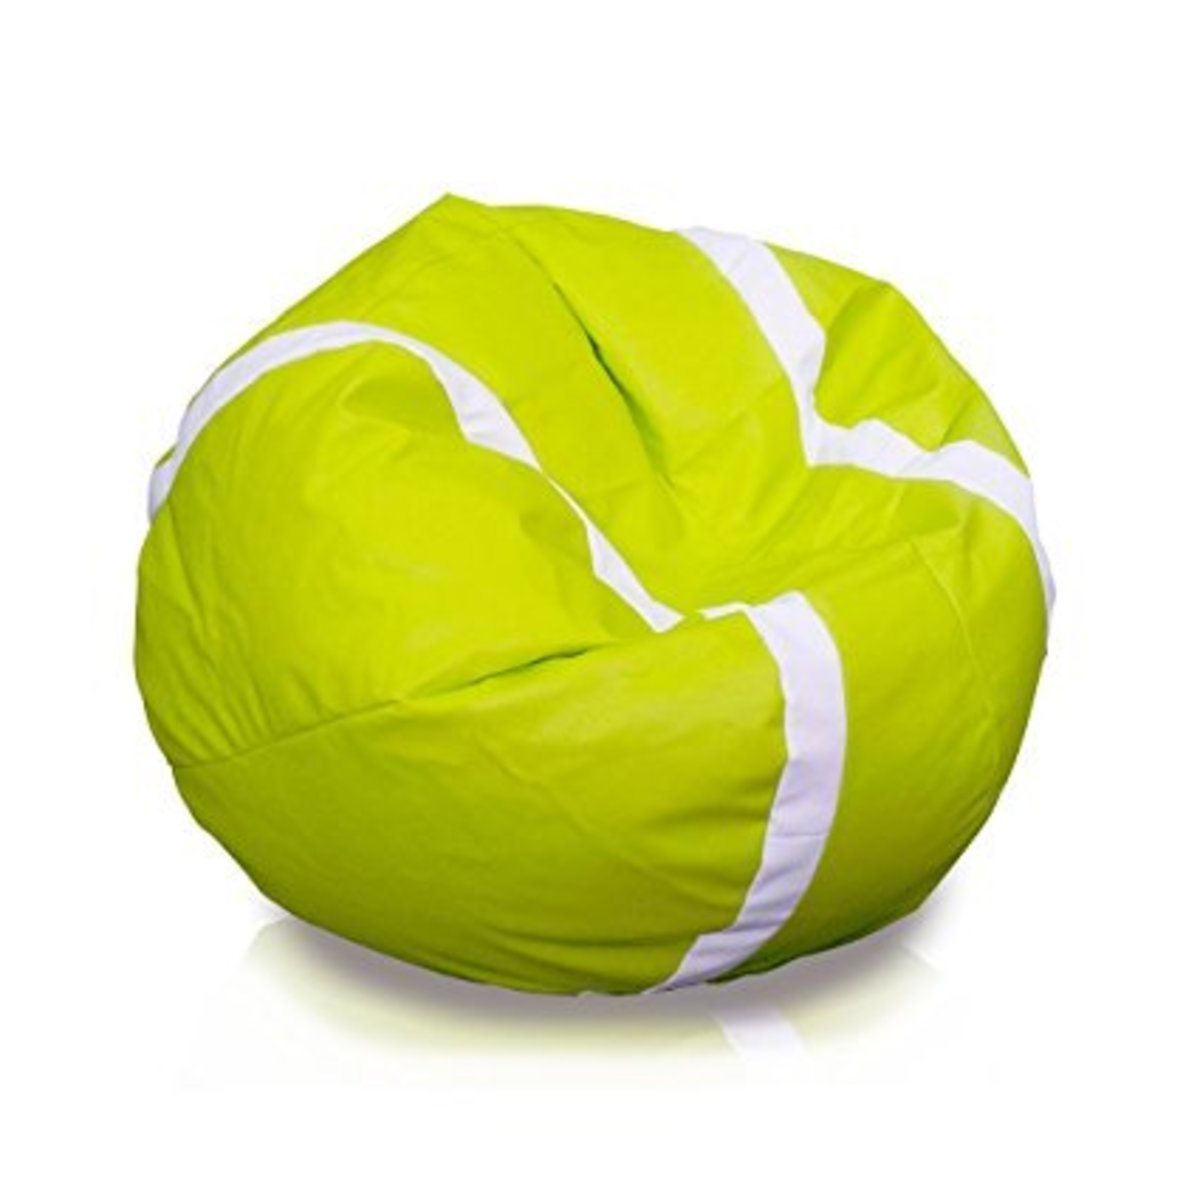 Tennis bean bag chair. Such a cool idea and great for the rooms of younger tennis players. A great gift that provides comfortable and stylish seating.